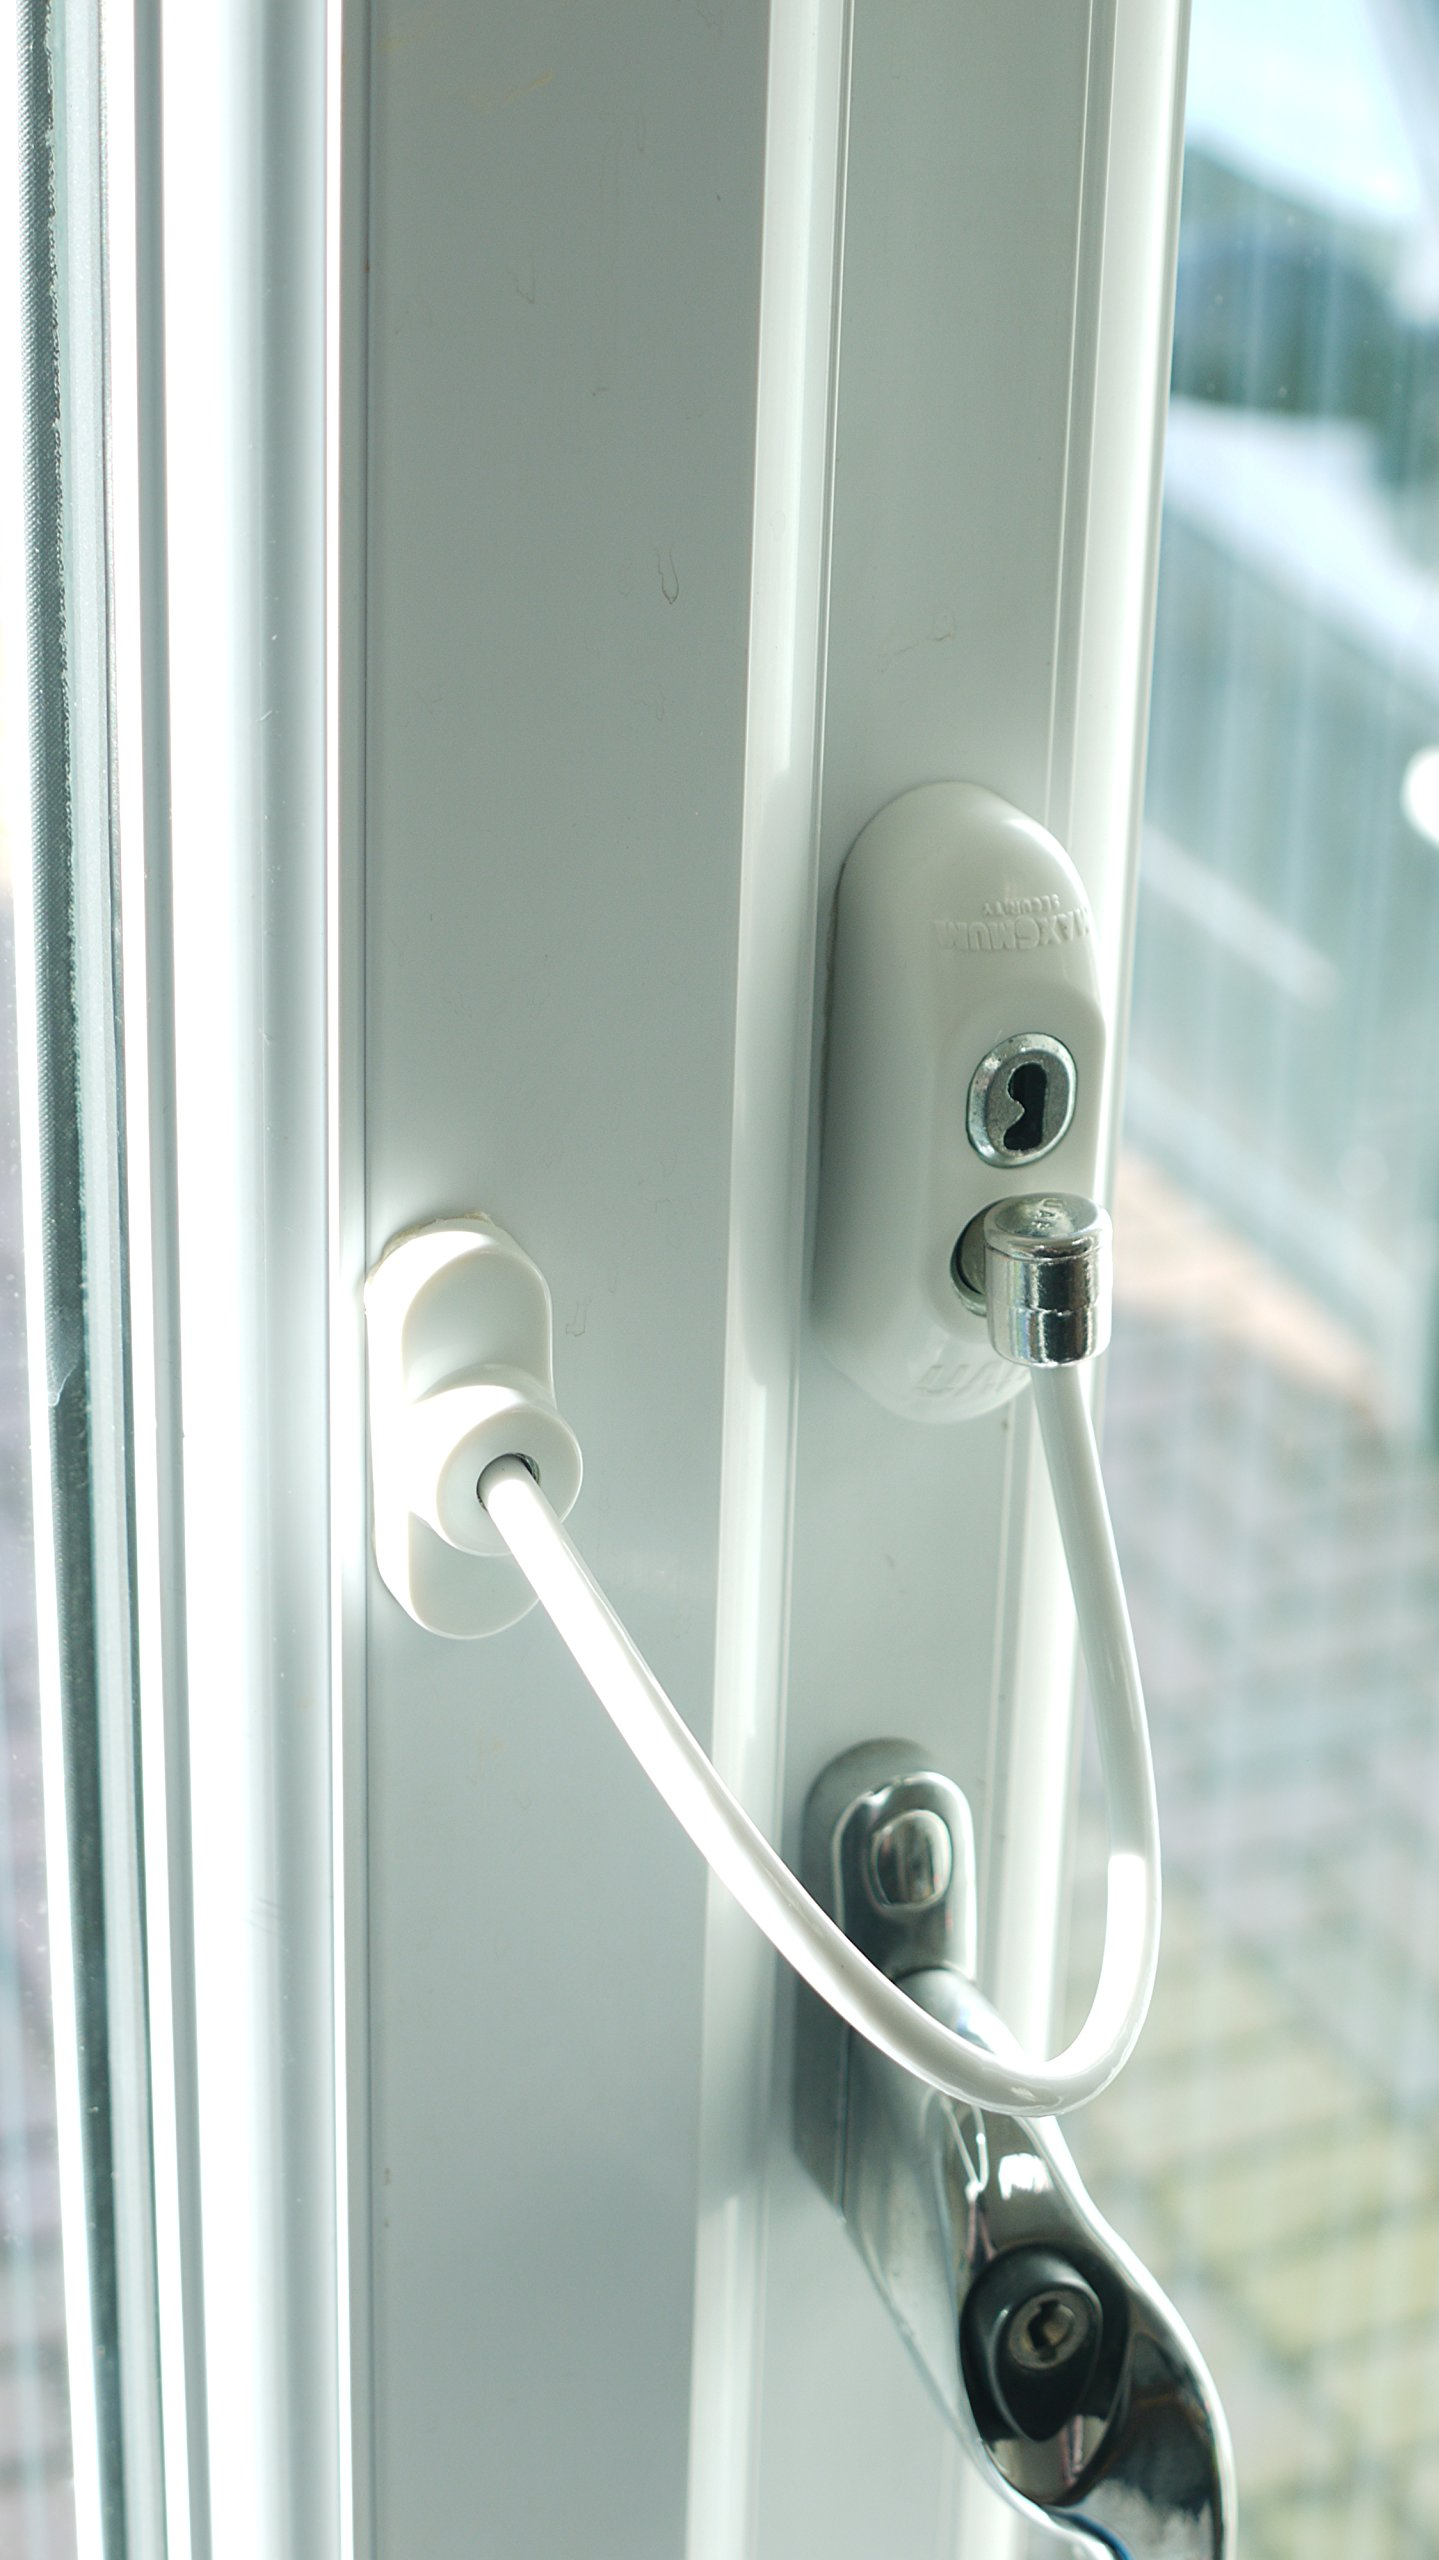 Window Door Restrictor Cable, Security Lock And Key, Baby/Child Safety, Multiple Colors - White by Canzak (Image #1)